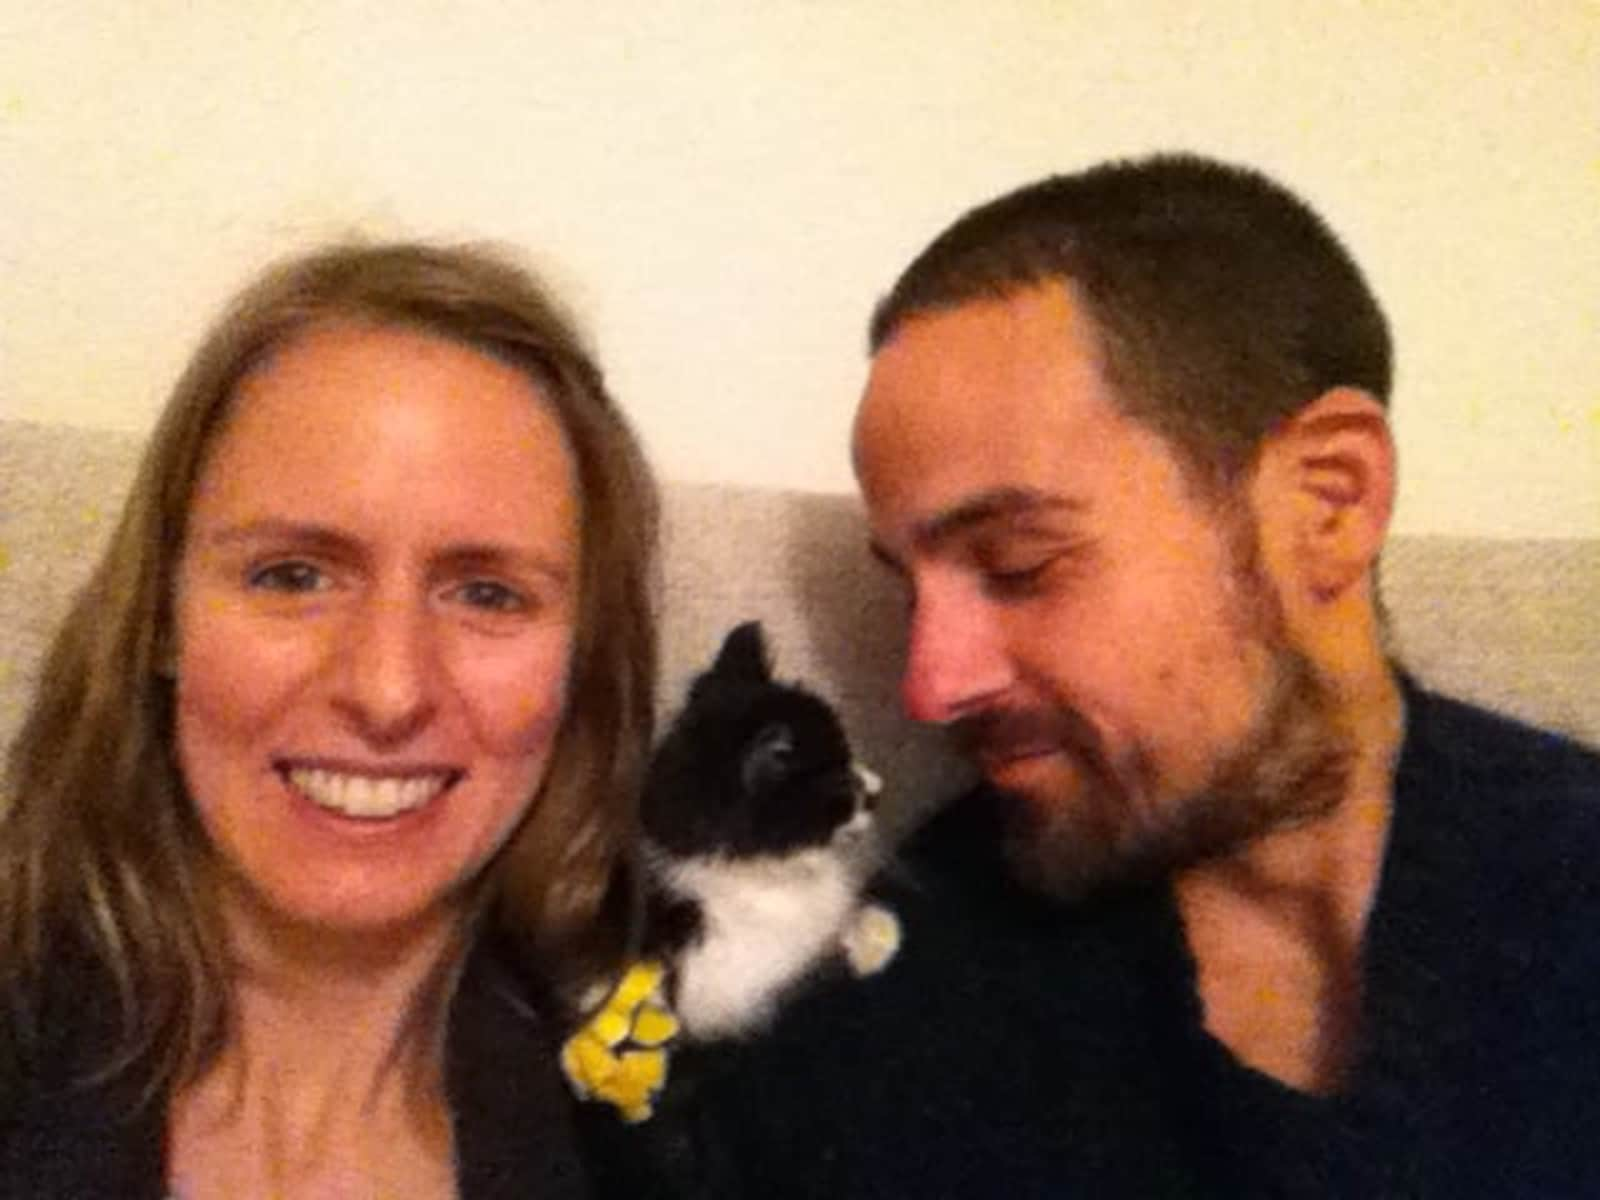 Eve & Kenneth from Victoria, British Columbia, Canada